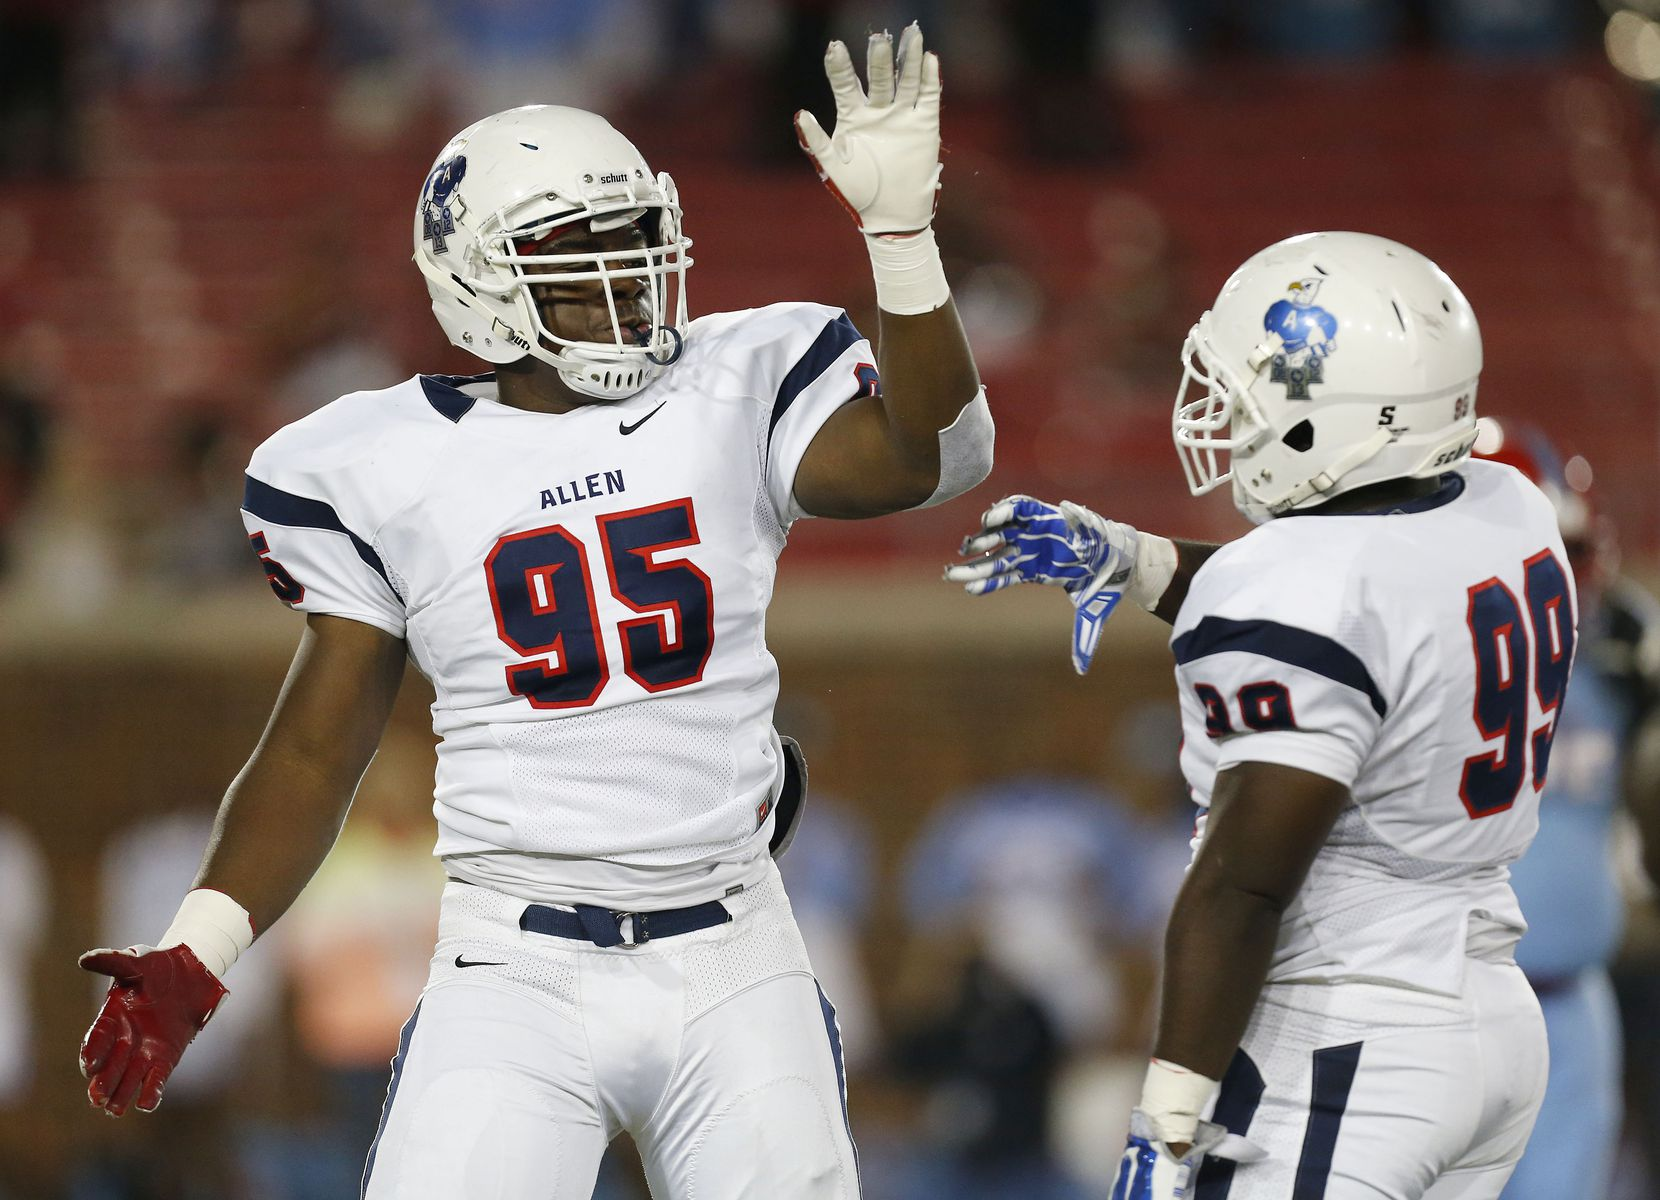 Allen defensive lineman Levi Onwuzurike (95) celebrates with defensive lineman Ryan Hinmon (99) after making a tackle in the first quarter during the UIL class 6A division I state semifinal high school football game between Allen and Skyline at Gerald J. Ford Stadium in Dallas Saturday December 13, 2014. (Andy Jacobsohn/The Dallas Morning News)